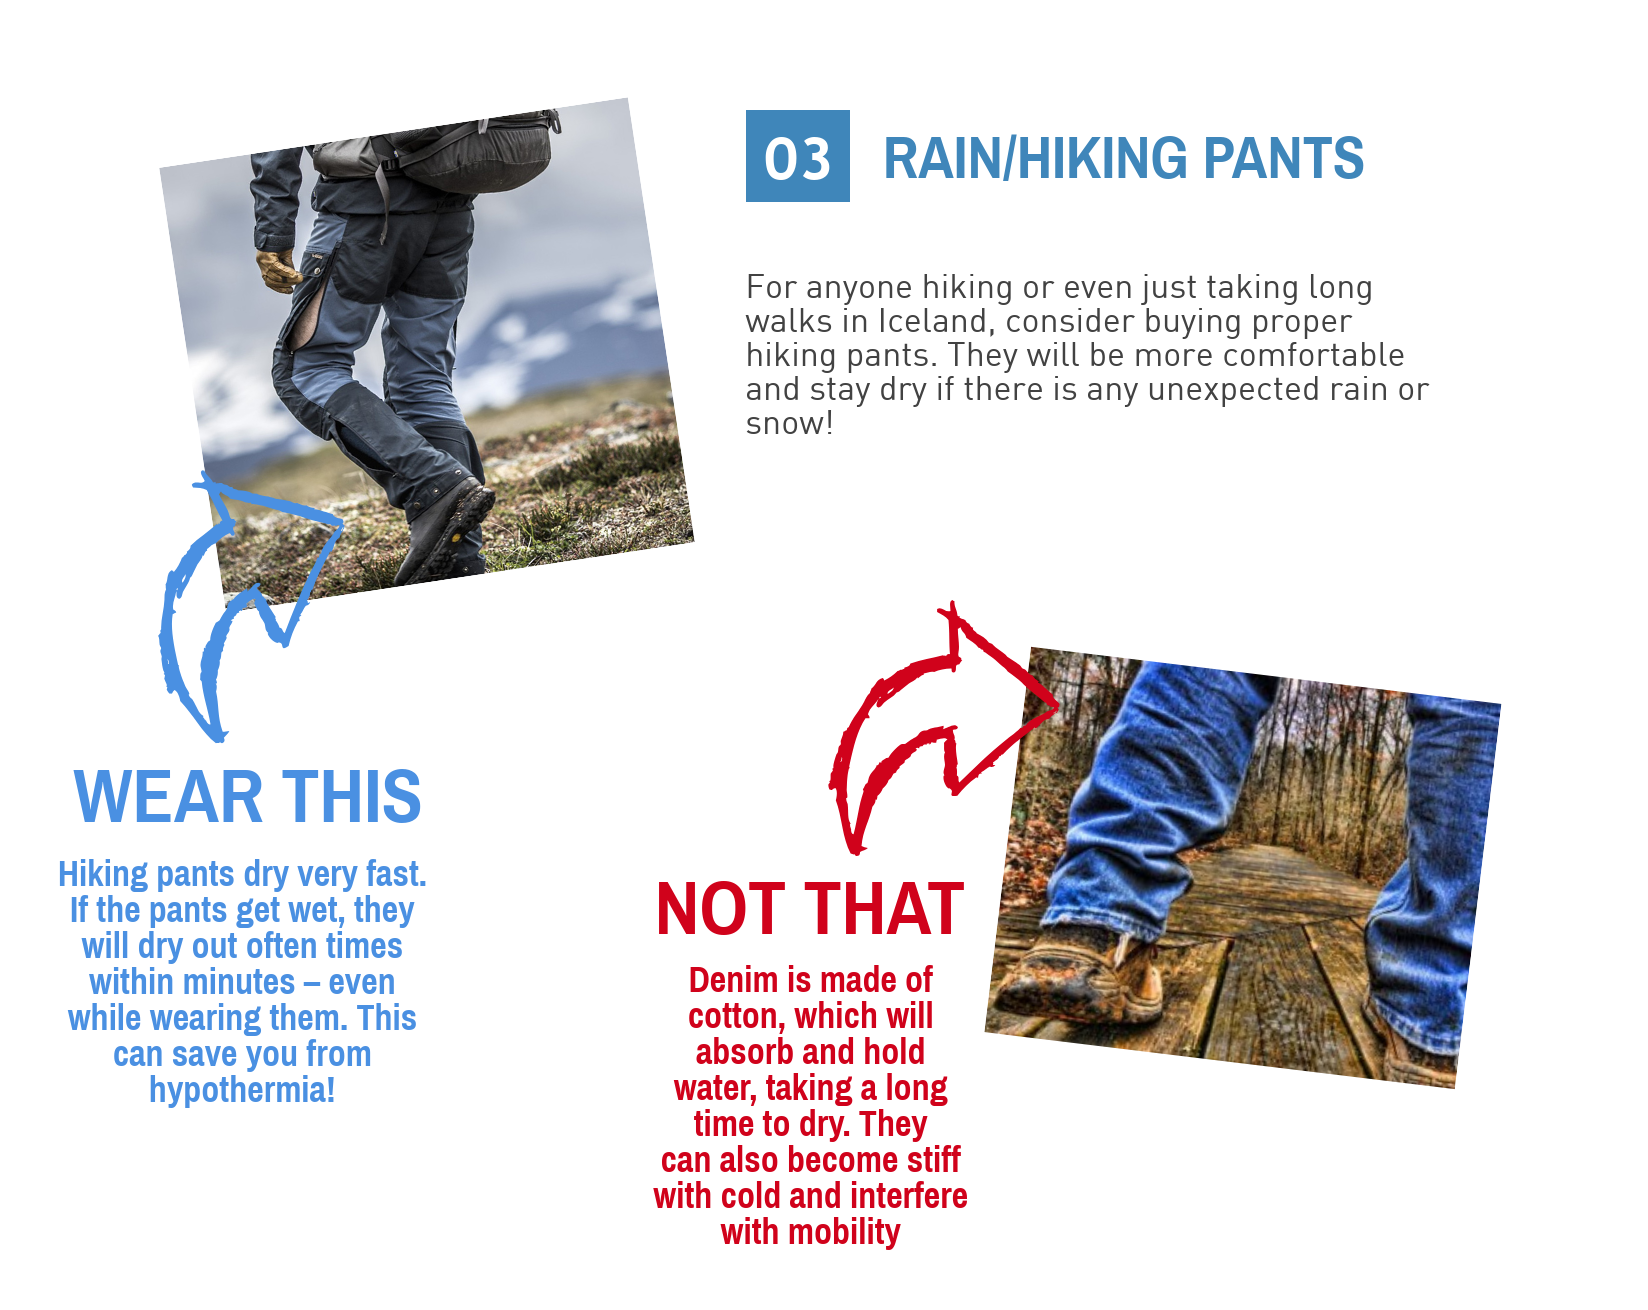 Rain/Hiking Pants Graphic. Description in Image